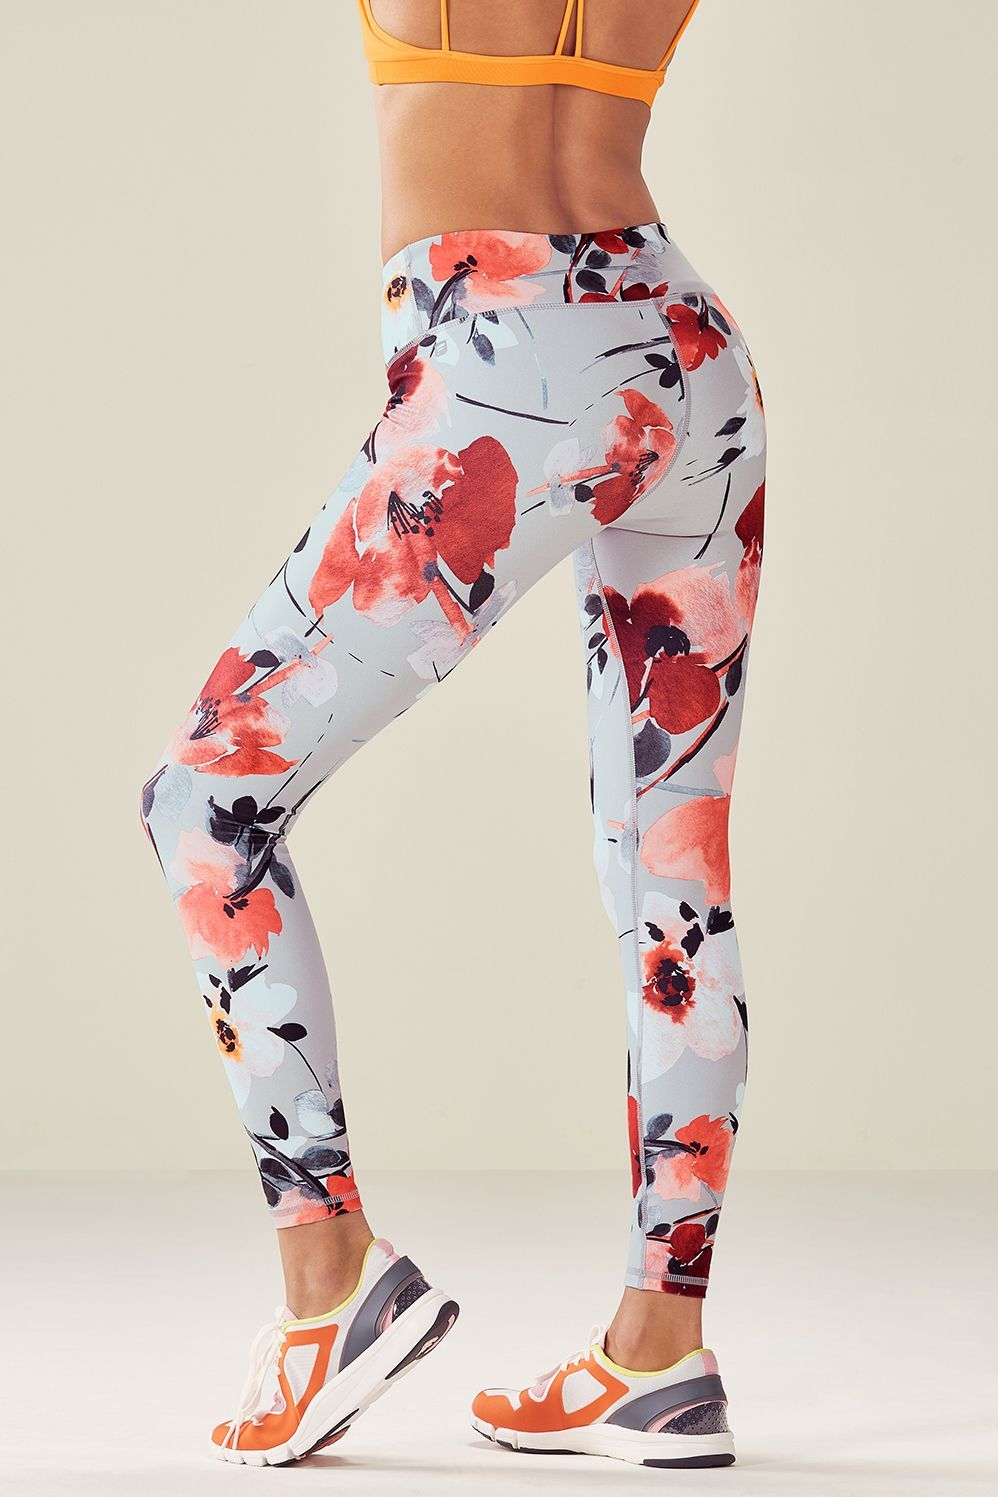 a286ff84edd94f Cashel Side Cinch Tank in 2019 | Style | Floral leggings outfit ...